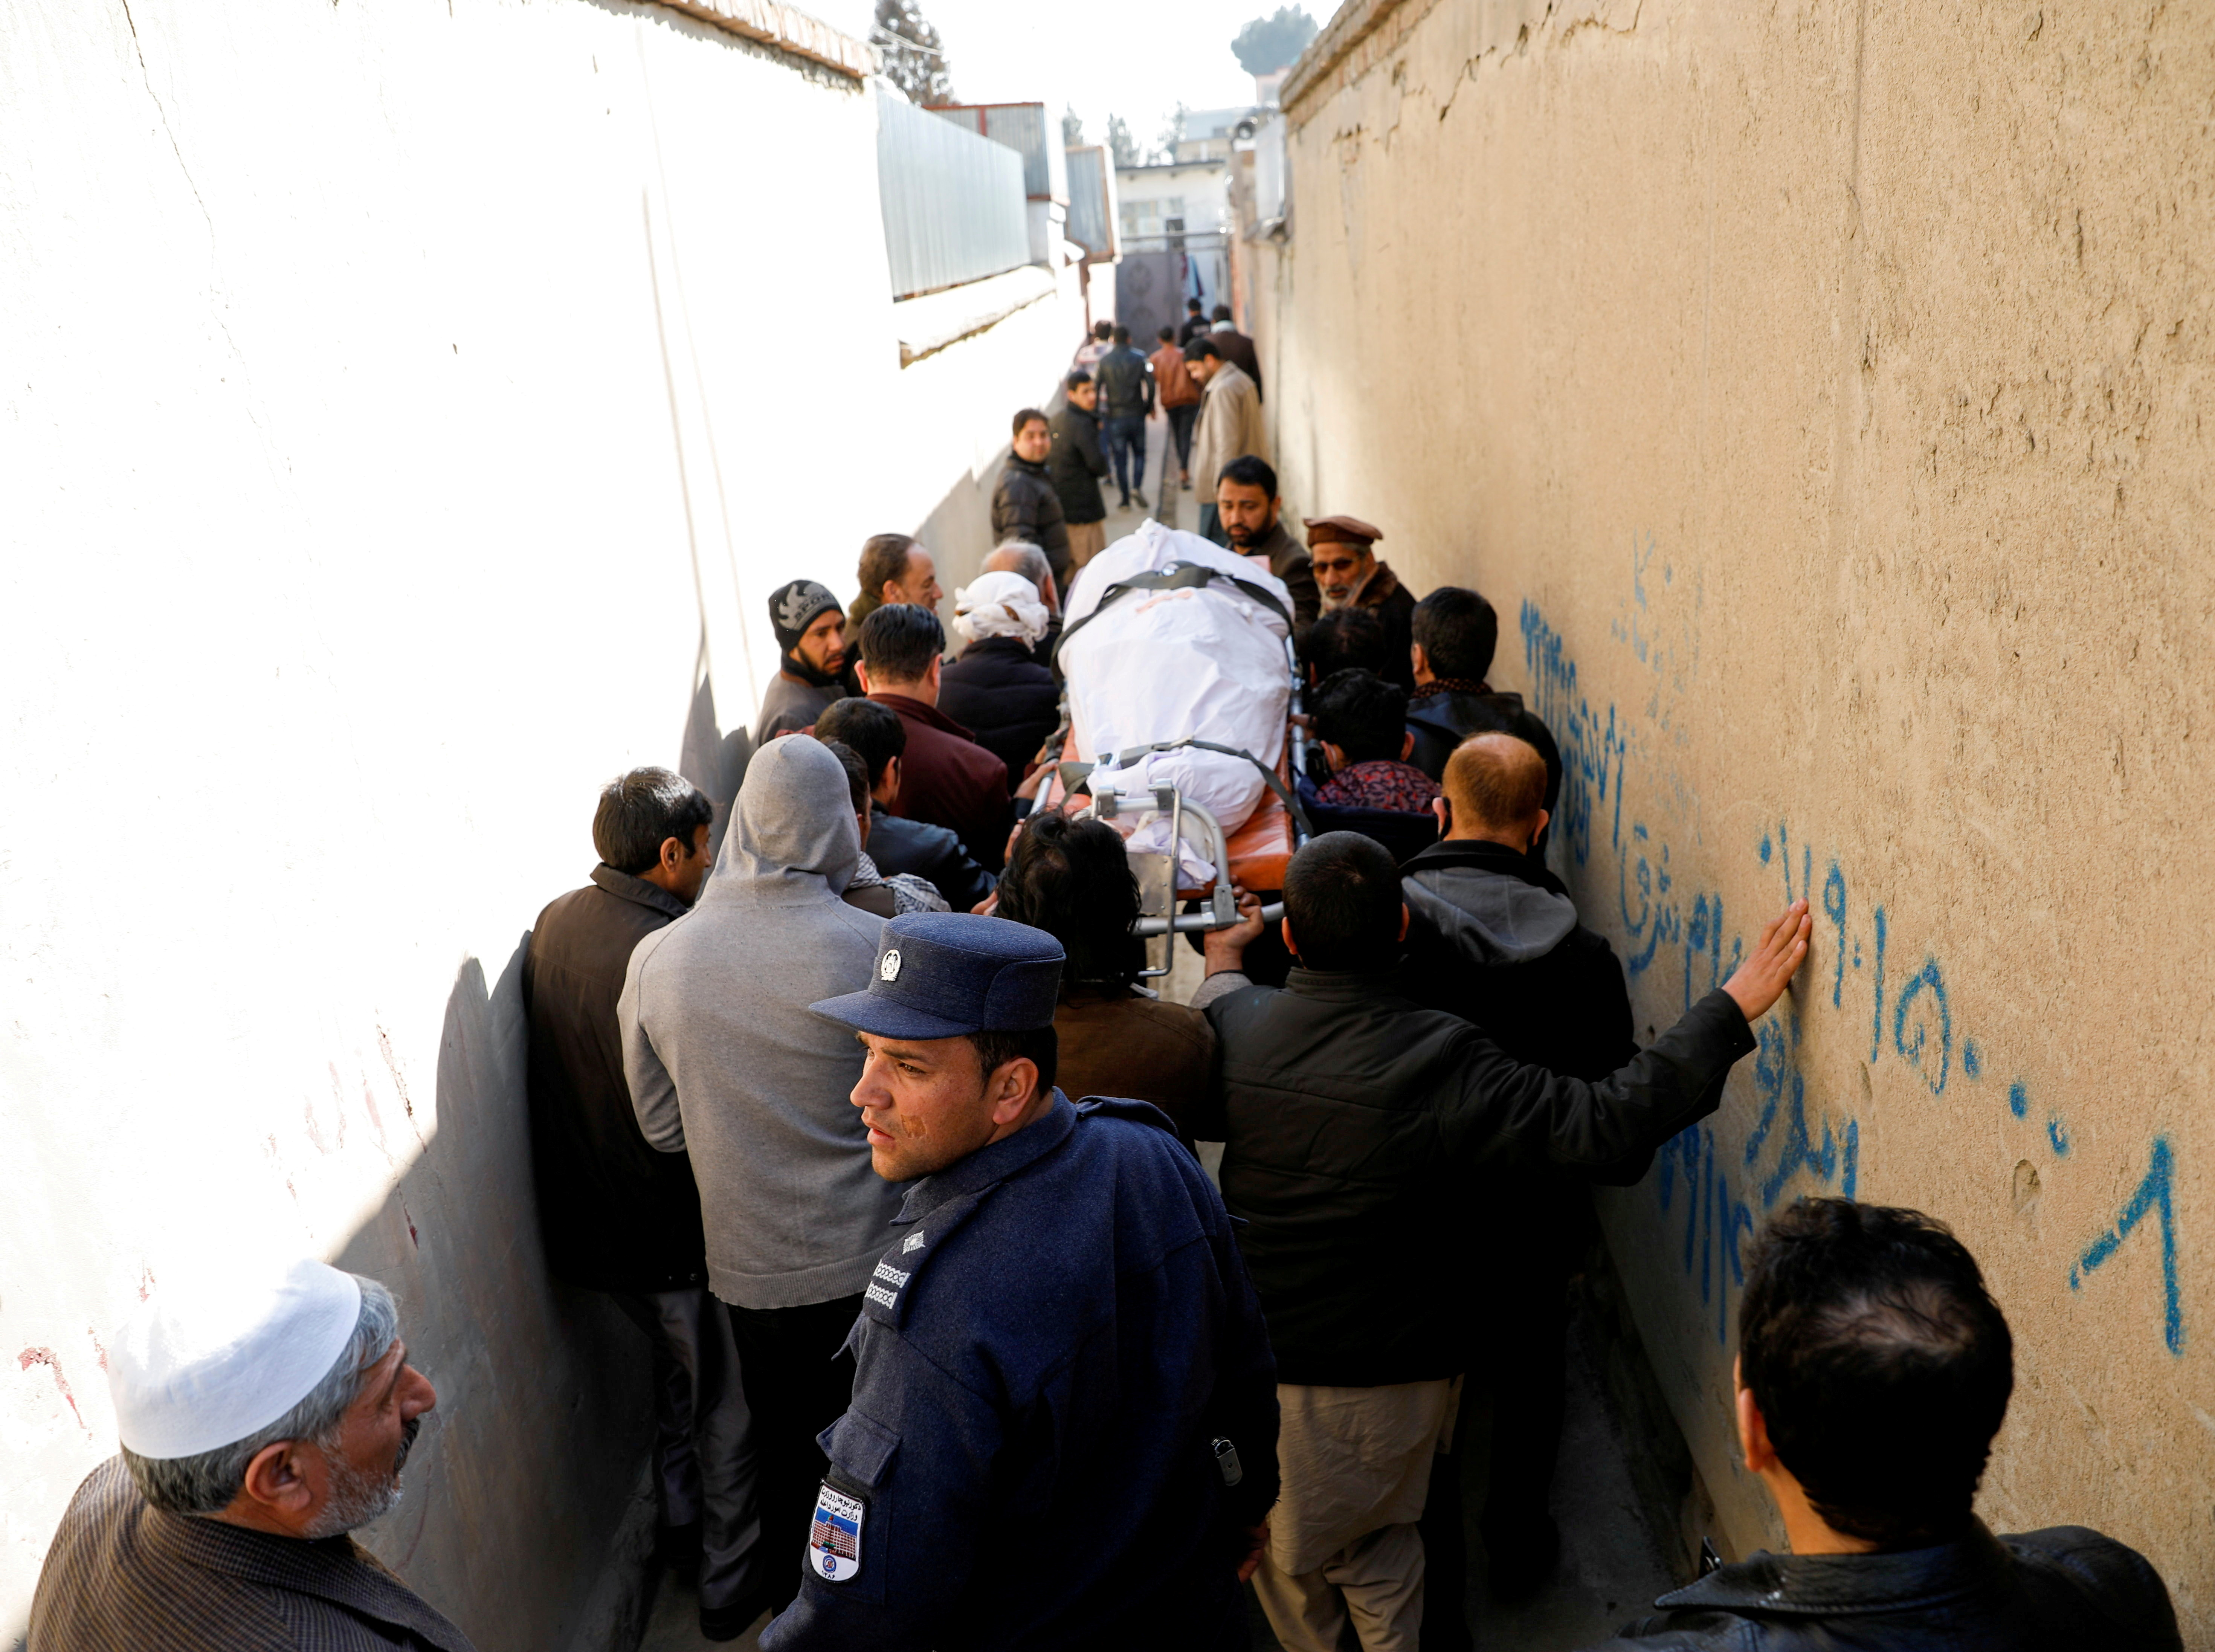 Relatives carry the body of a female judge shot dead by unknown gunmen in Kabul, Afghanistan January 17, 2021. REUTERS/Mohammad Ismail